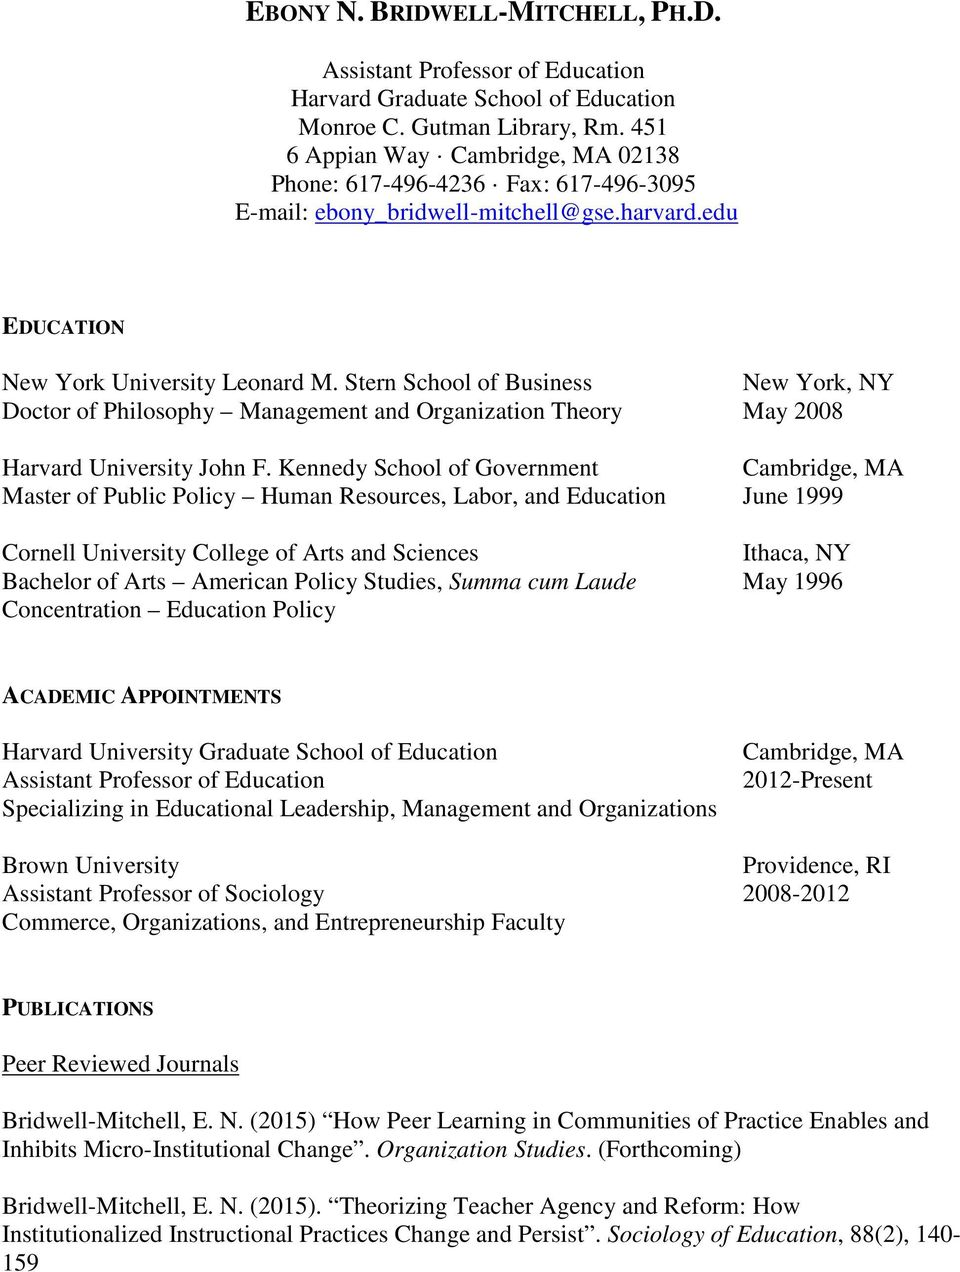 Kennedy School of Government Master of Public Policy Human Resources, Labor, and Education June 1999 Cornell University College of Arts and Sciences Ithaca, NY Bachelor of Arts American Policy